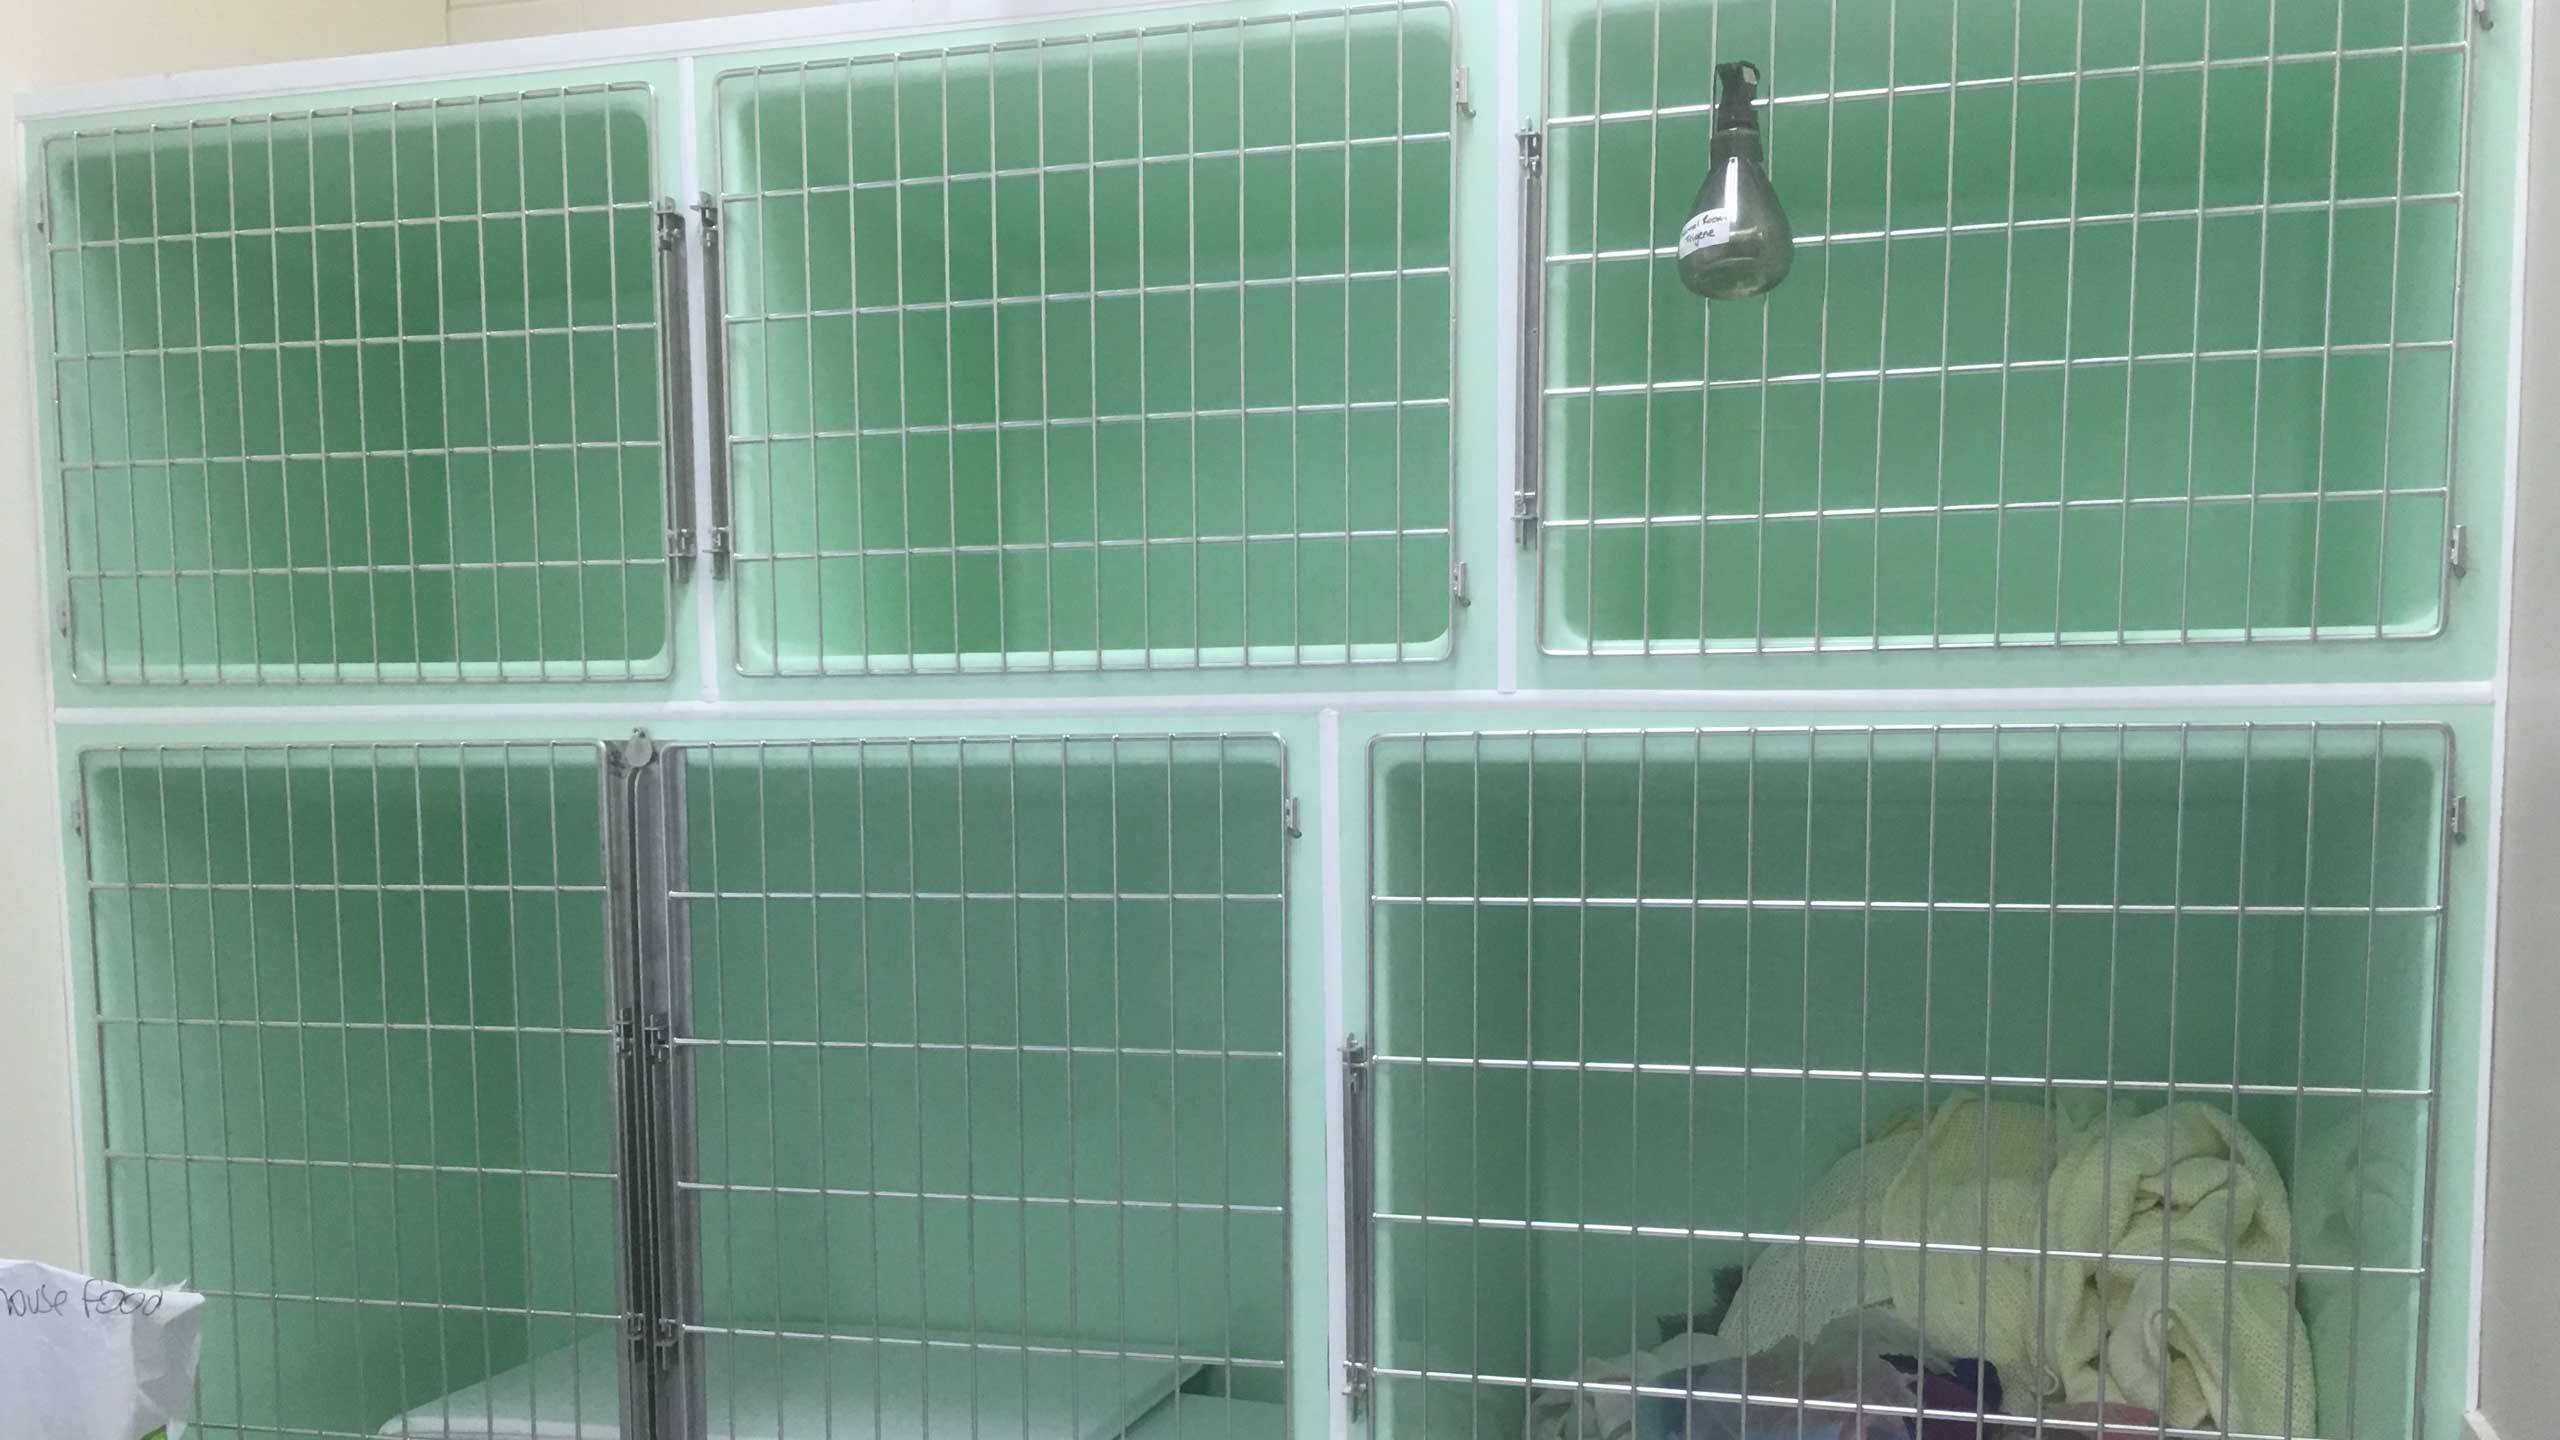 Creature Comfort Cages cage bank: 3 x Medium Dog Cages (top), 1 x Double Wide Dog Cage + 1 x Large Dog Cage (bottom)